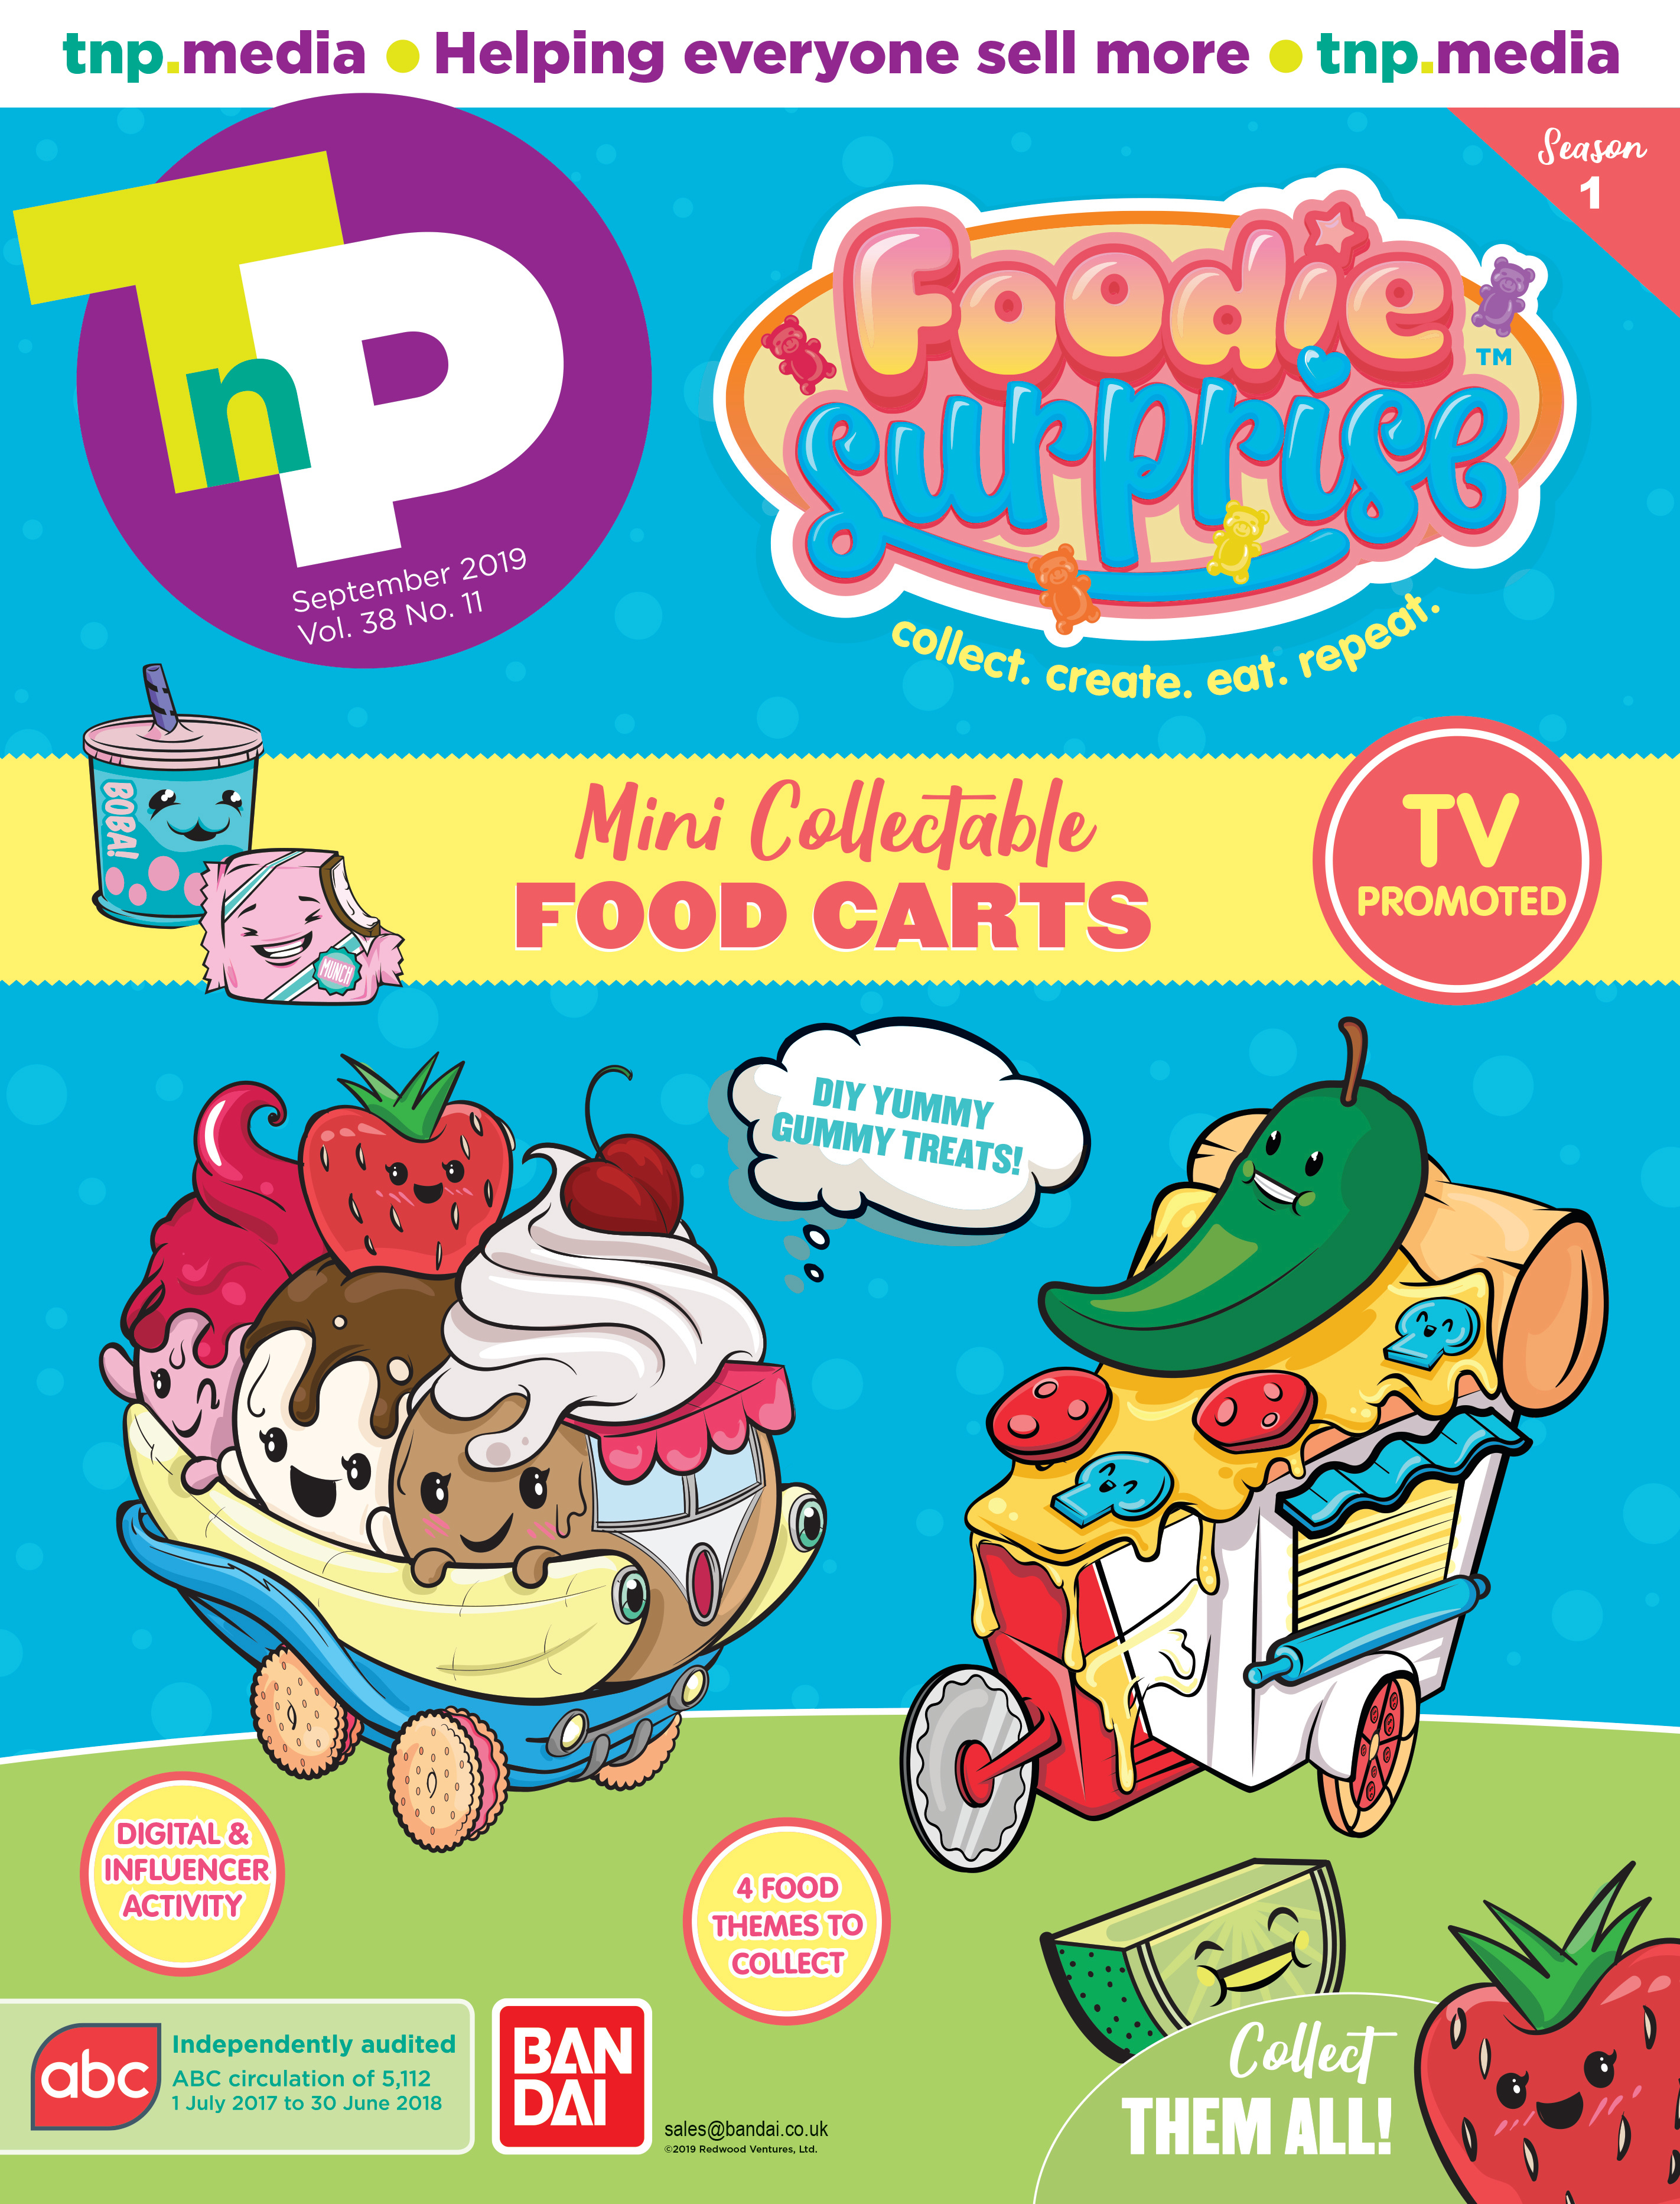 TNP Foodie Surpise Front Cover